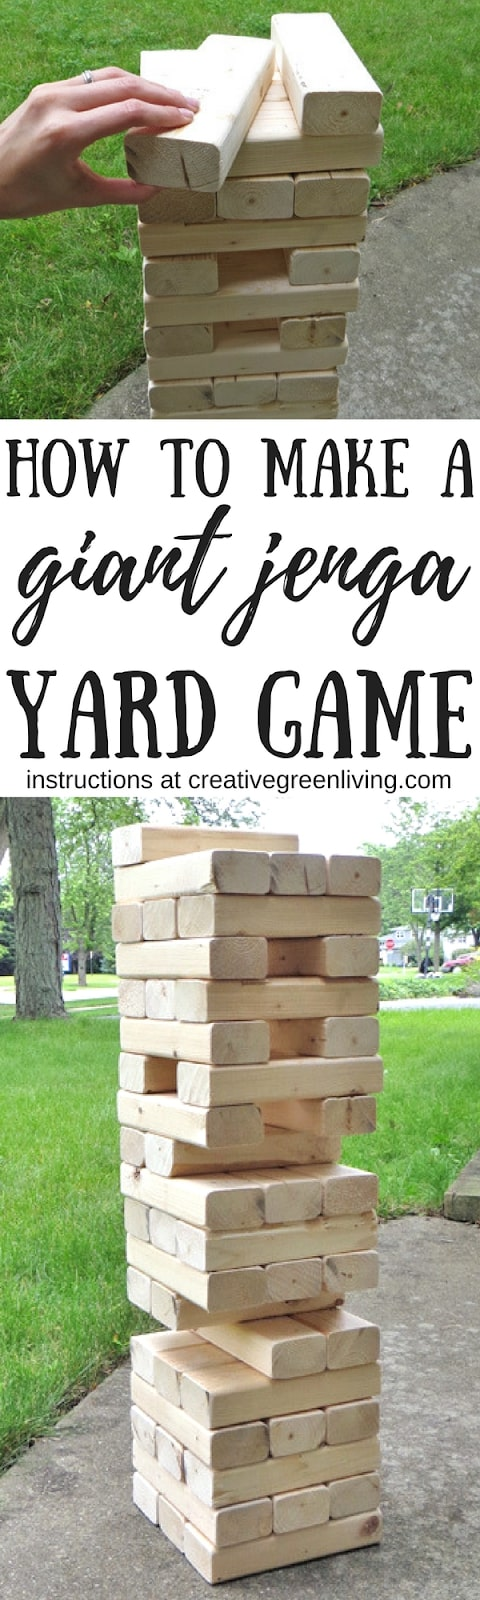 Learn how to make a giant DIY jenga game. It's the perfect yard game to play outside in the backyard this summer. #creativegreenliving #jenga #yardjenga #yardgames #giantjenga #jumbojenga